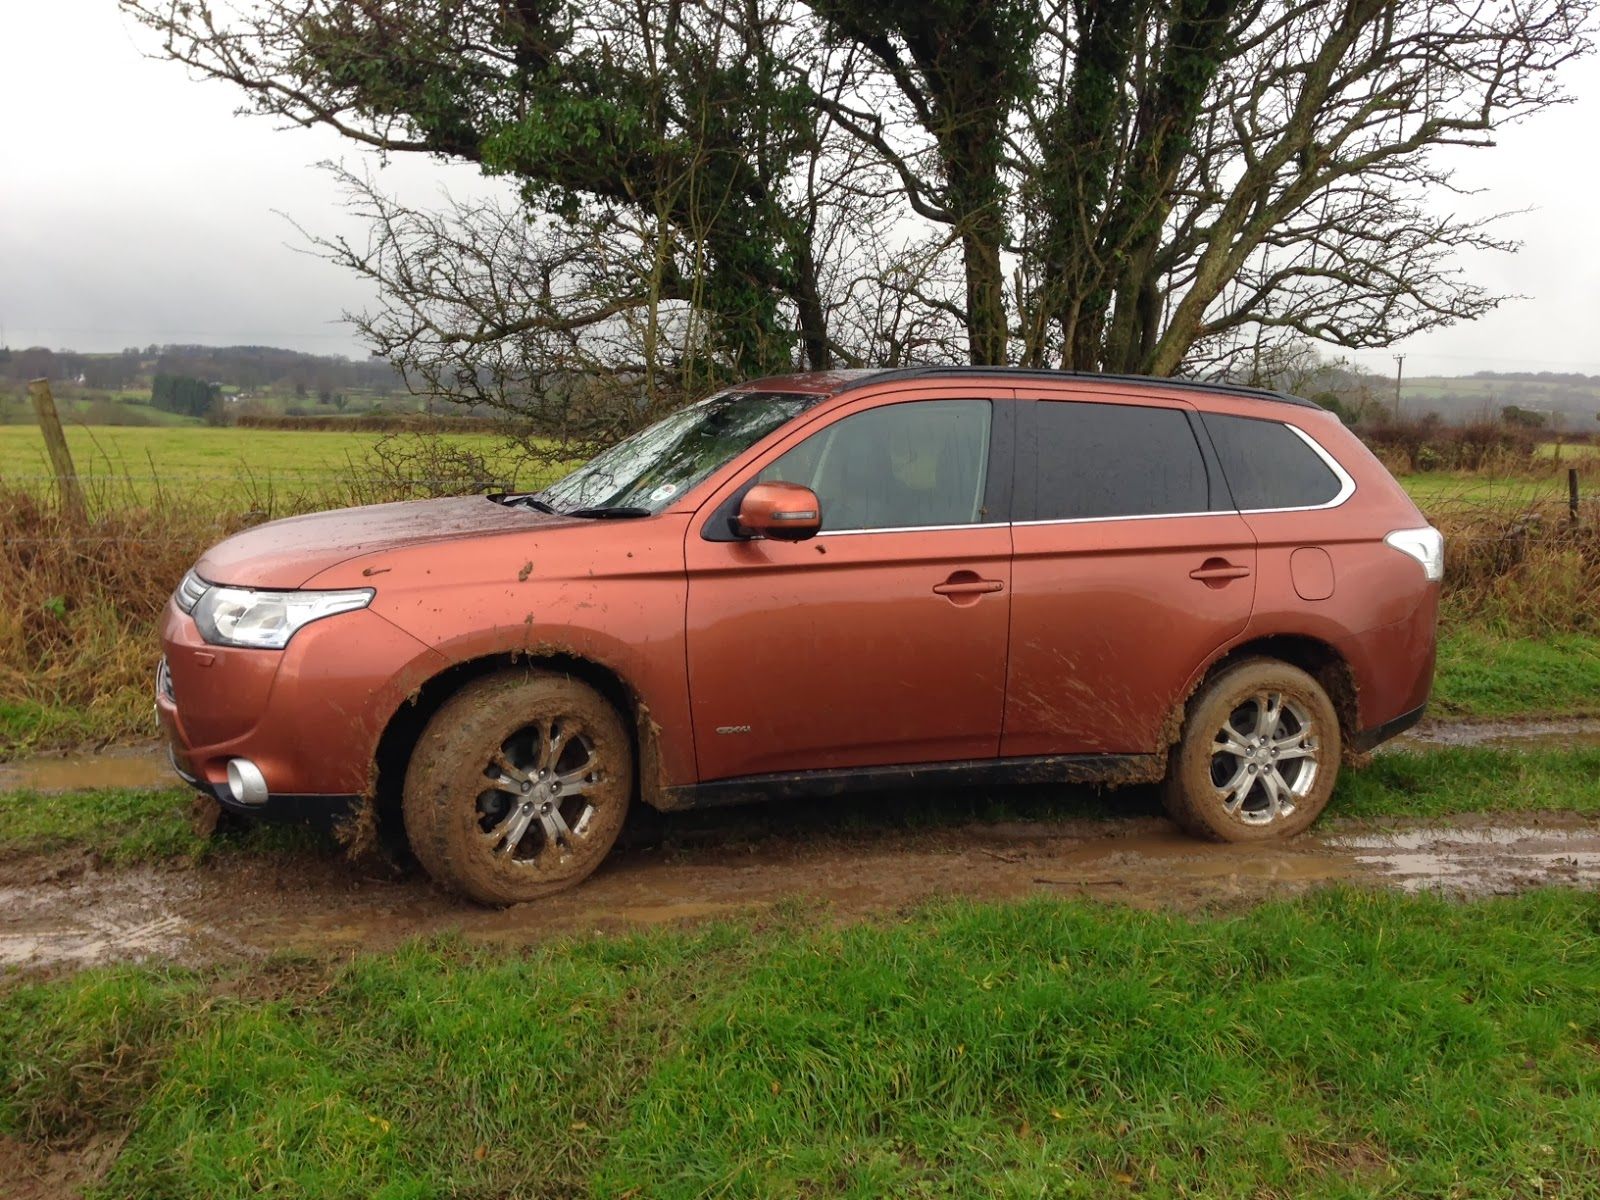 The Mitsubishi Outlander in a bit of a state, but back on solid ground